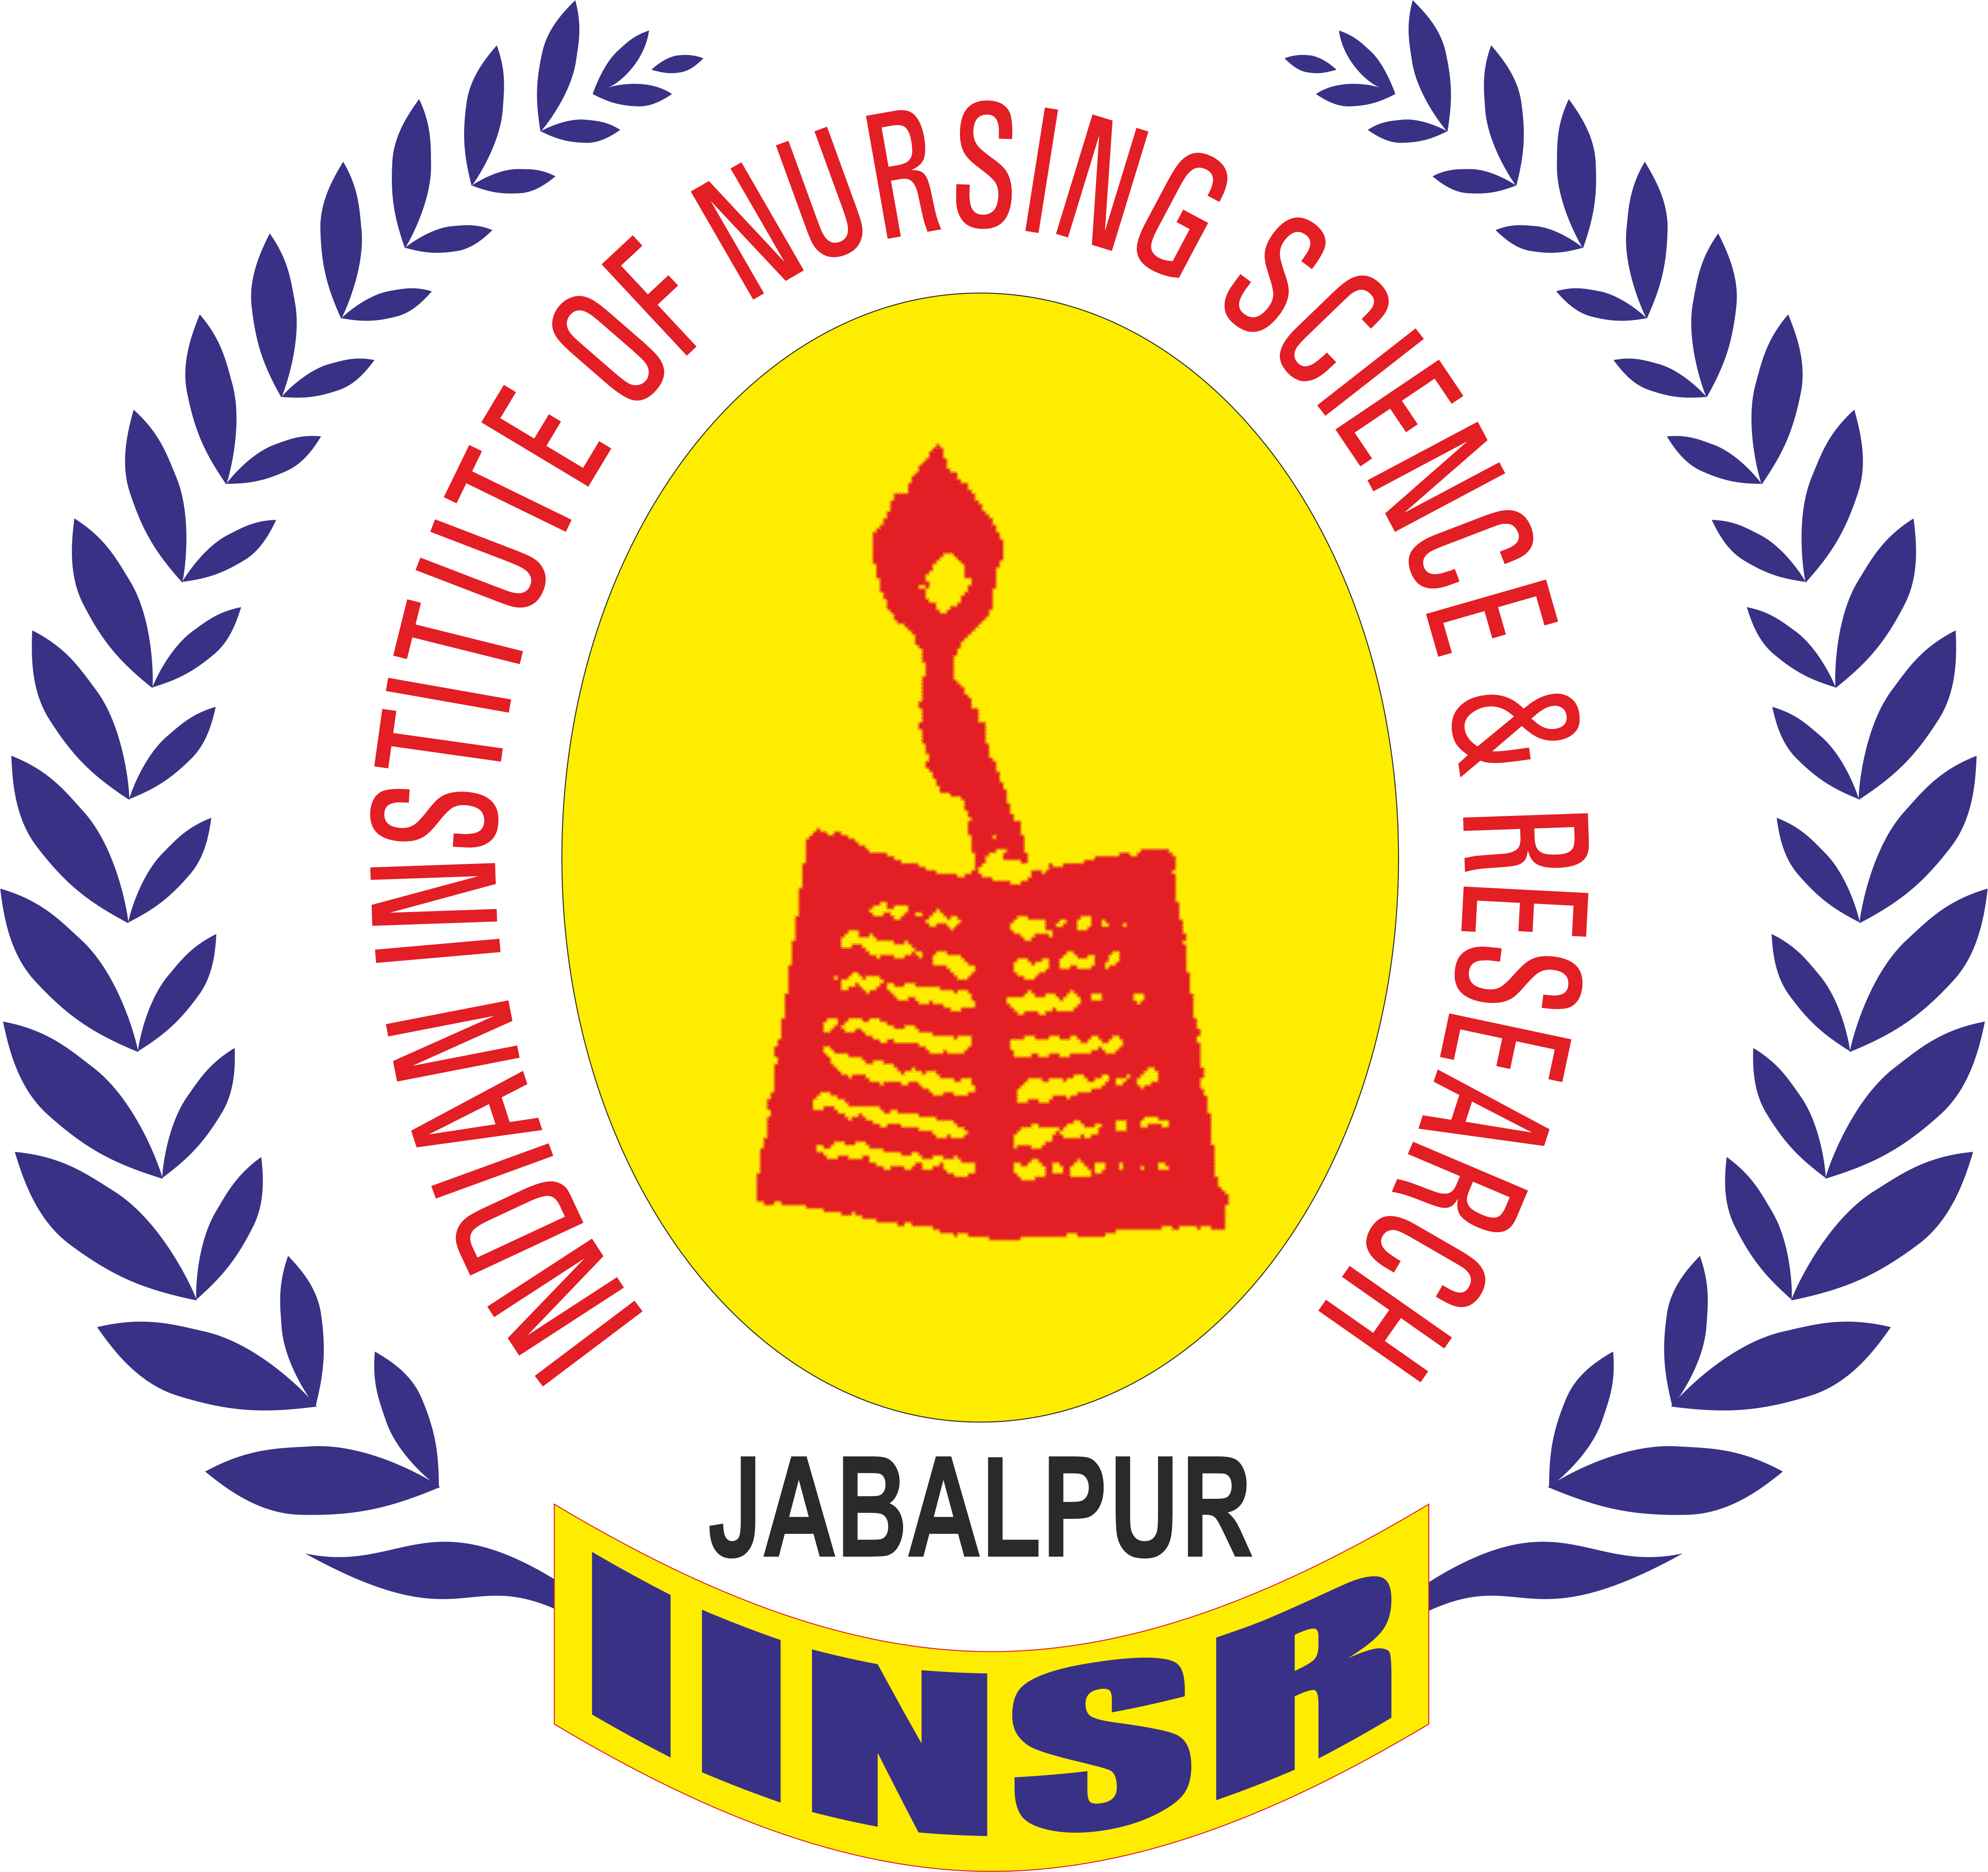 Indian Institute of Nursing Science and Research, Jabalpur